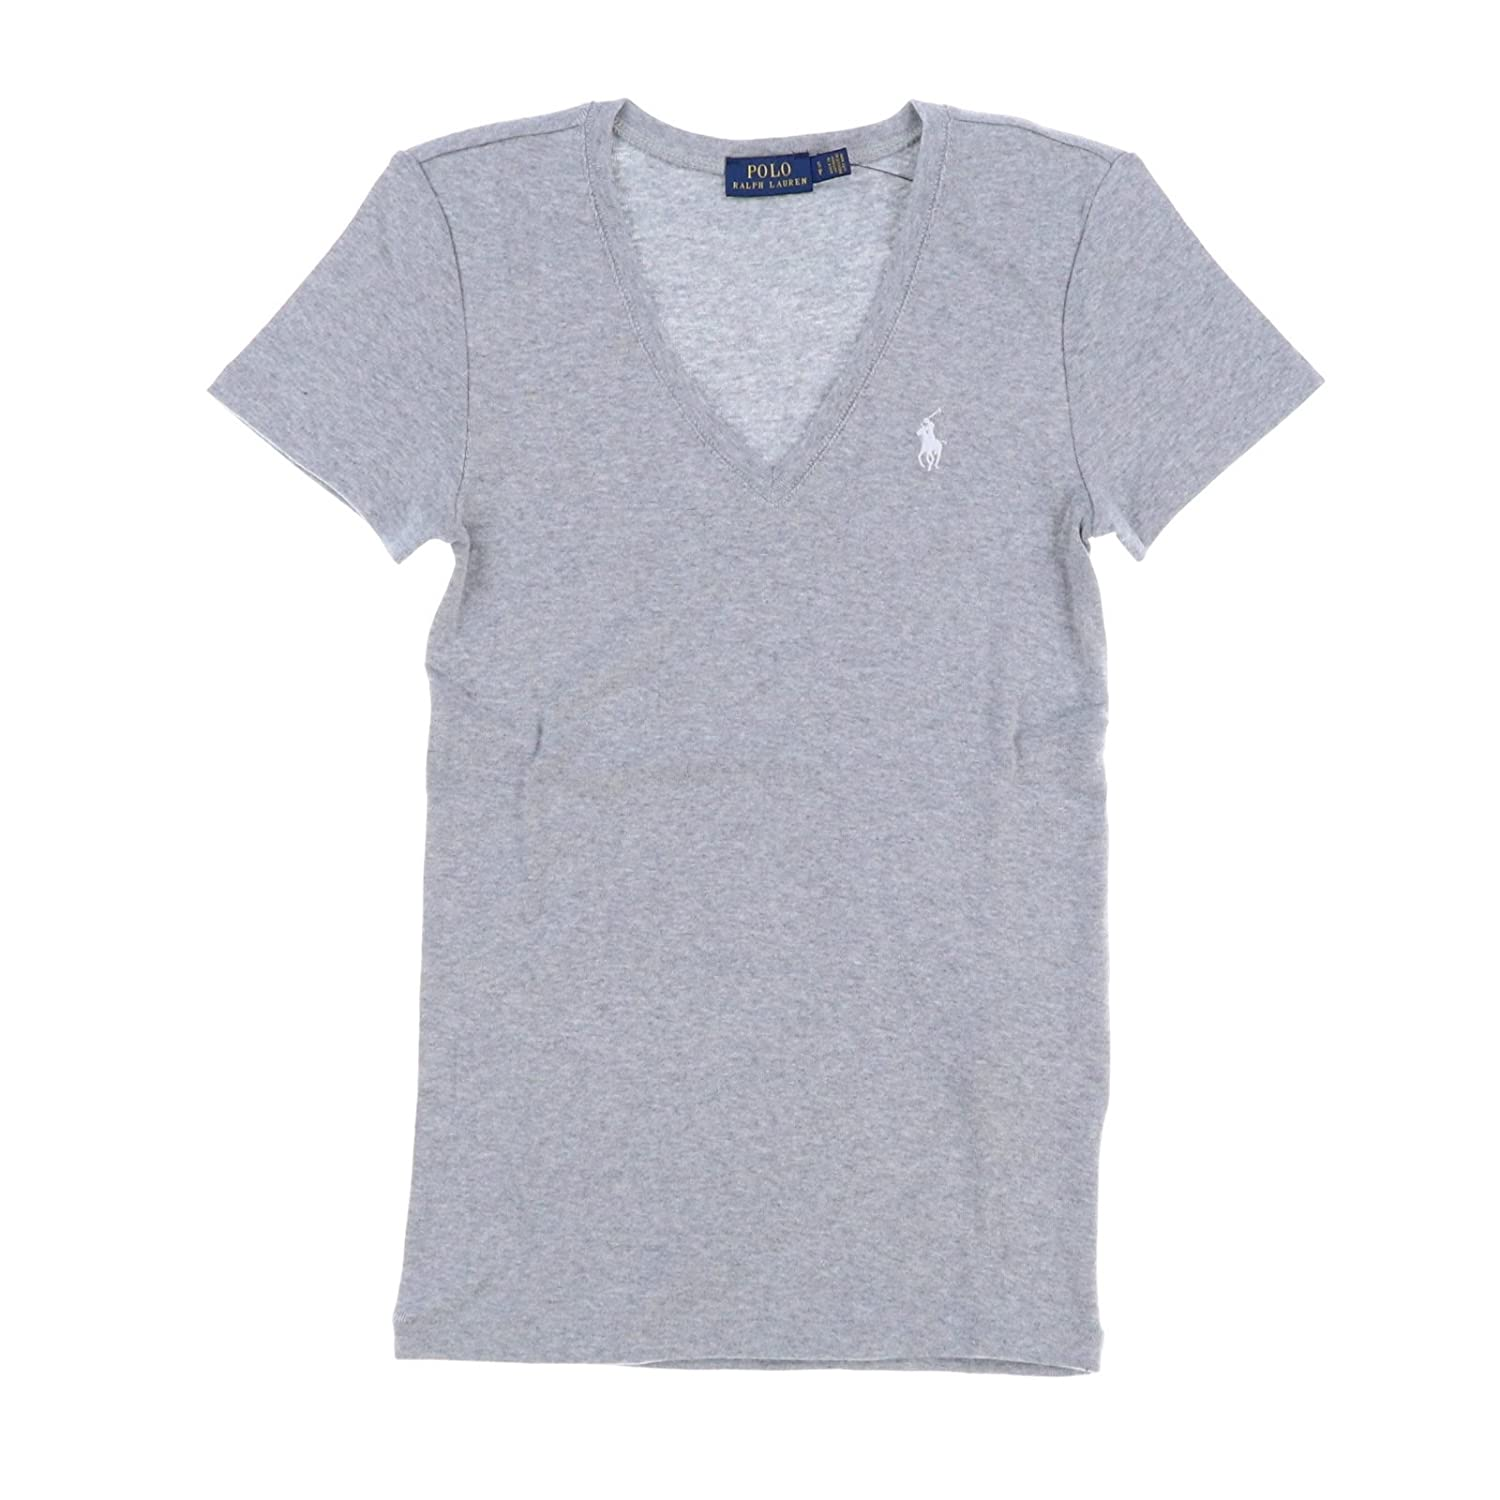 Polo Ralph Lauren Womens V Neck Perfect Tee At Amazon Womens